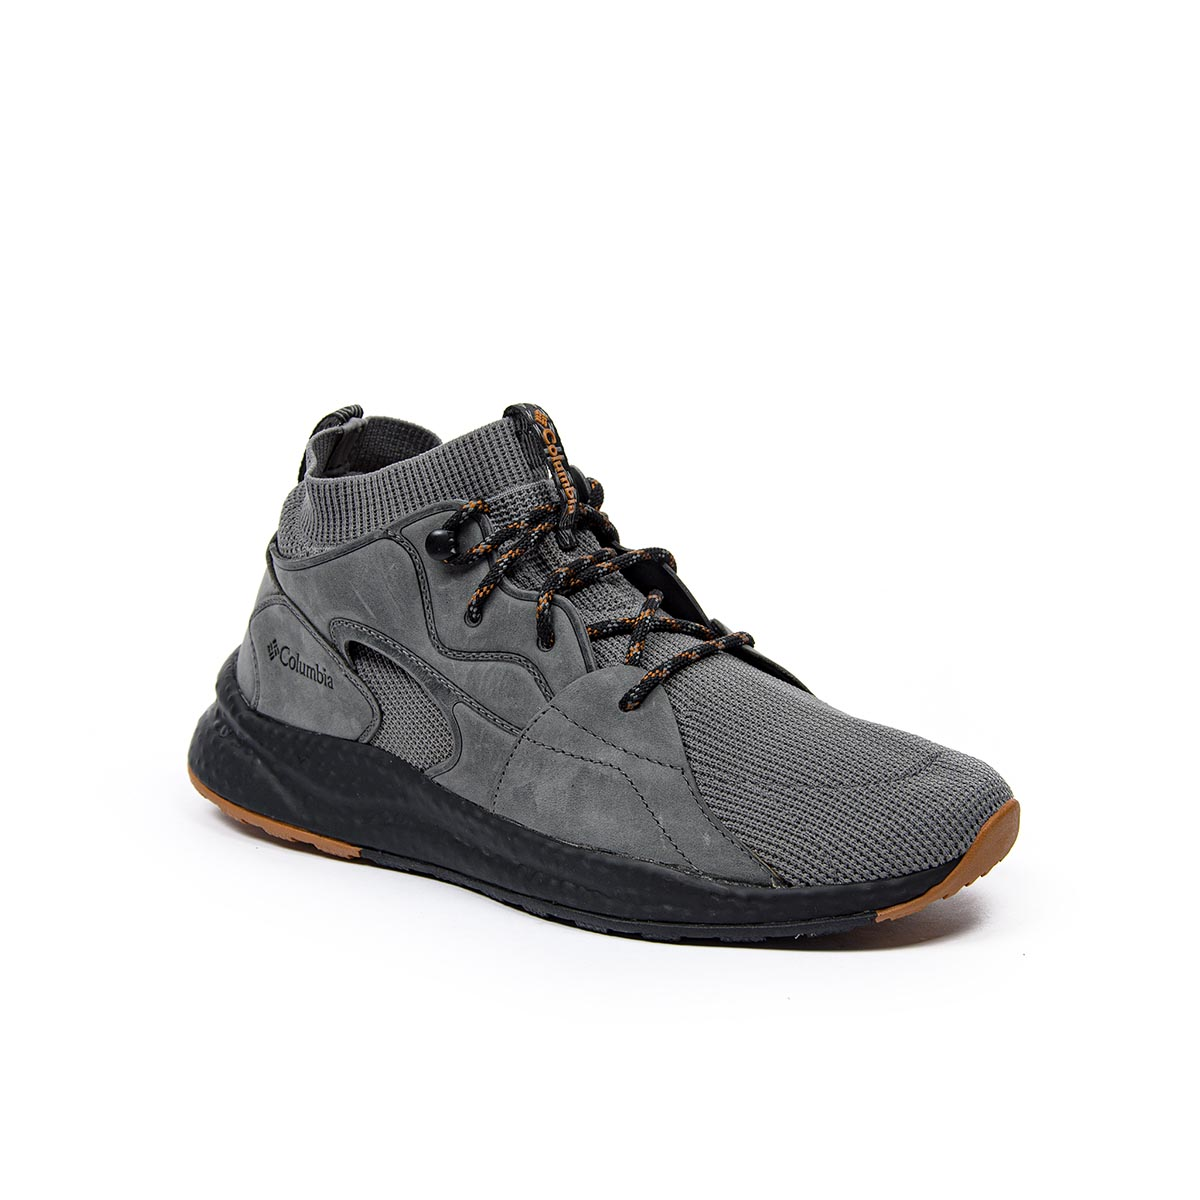 COLUMBIA - SH/FT OUTDRY MID